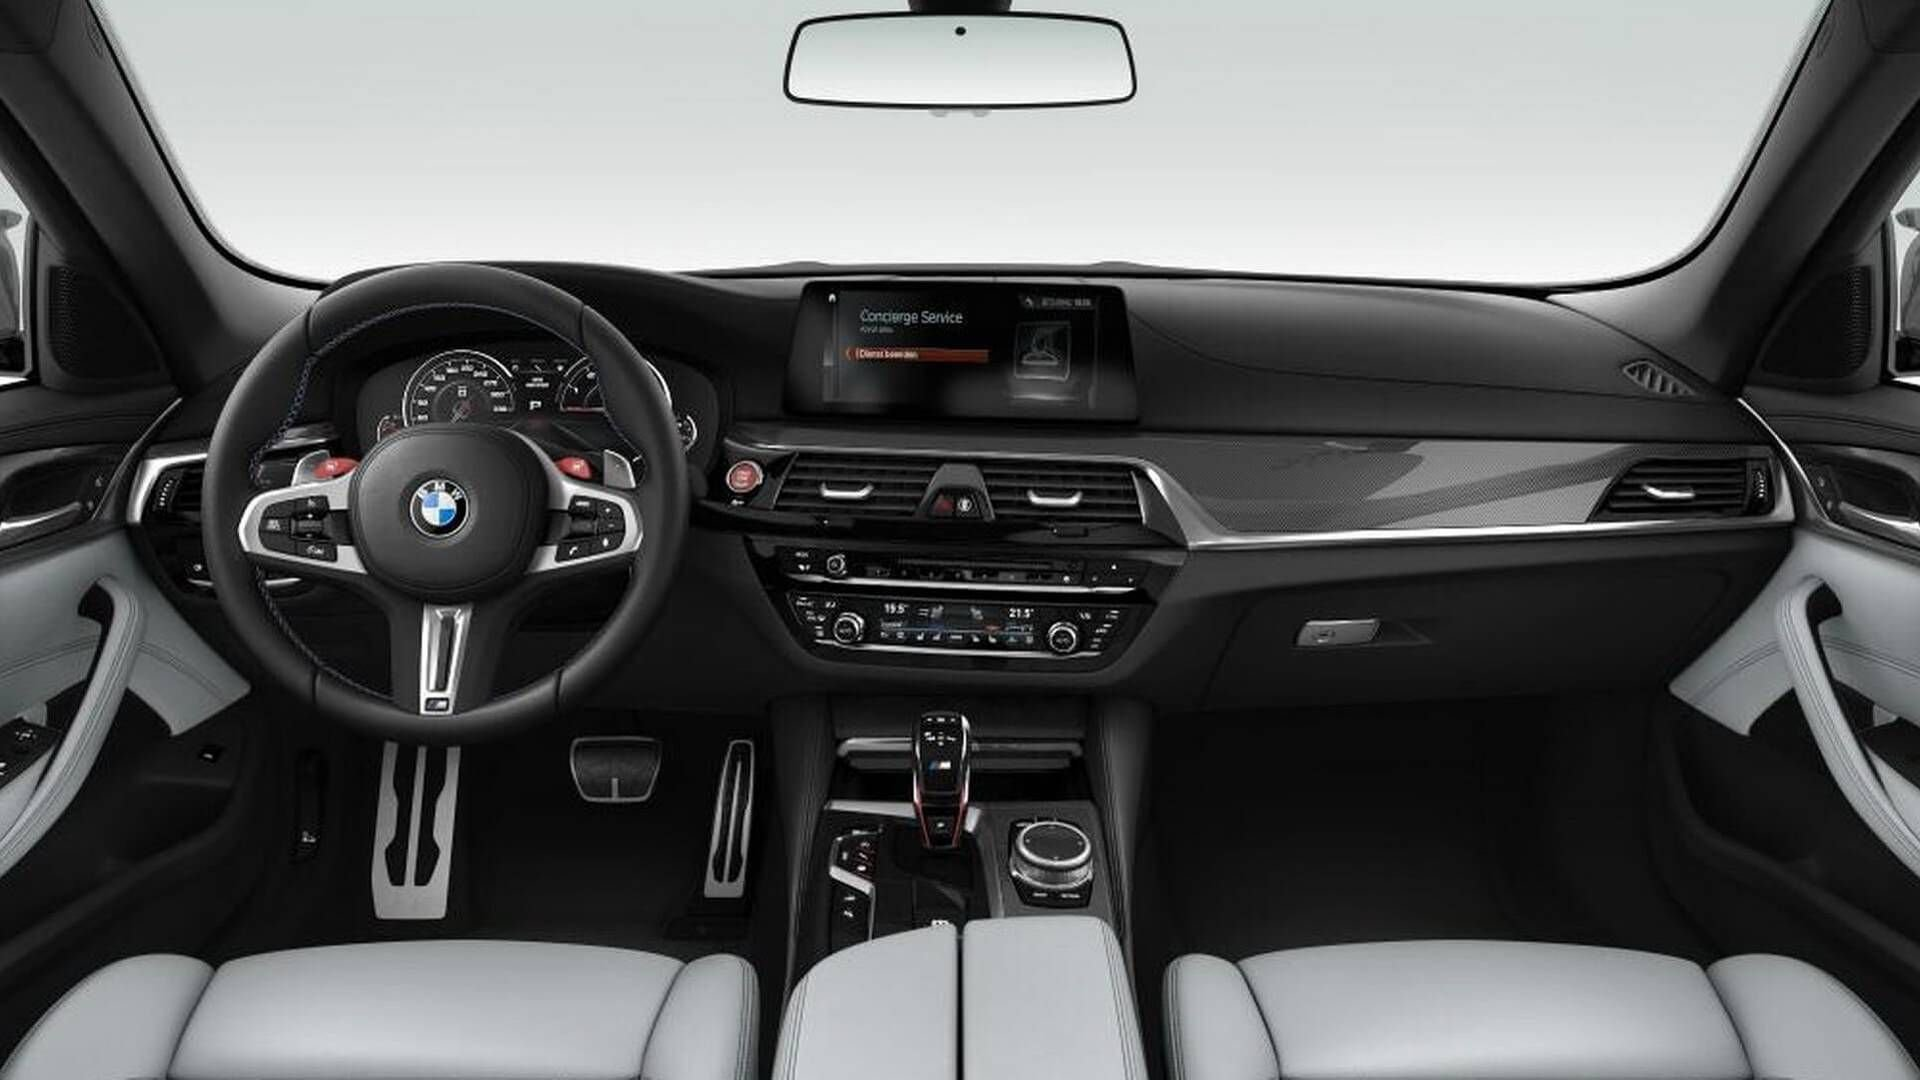 bmw-m5-with-the-competition-package-12.jpg